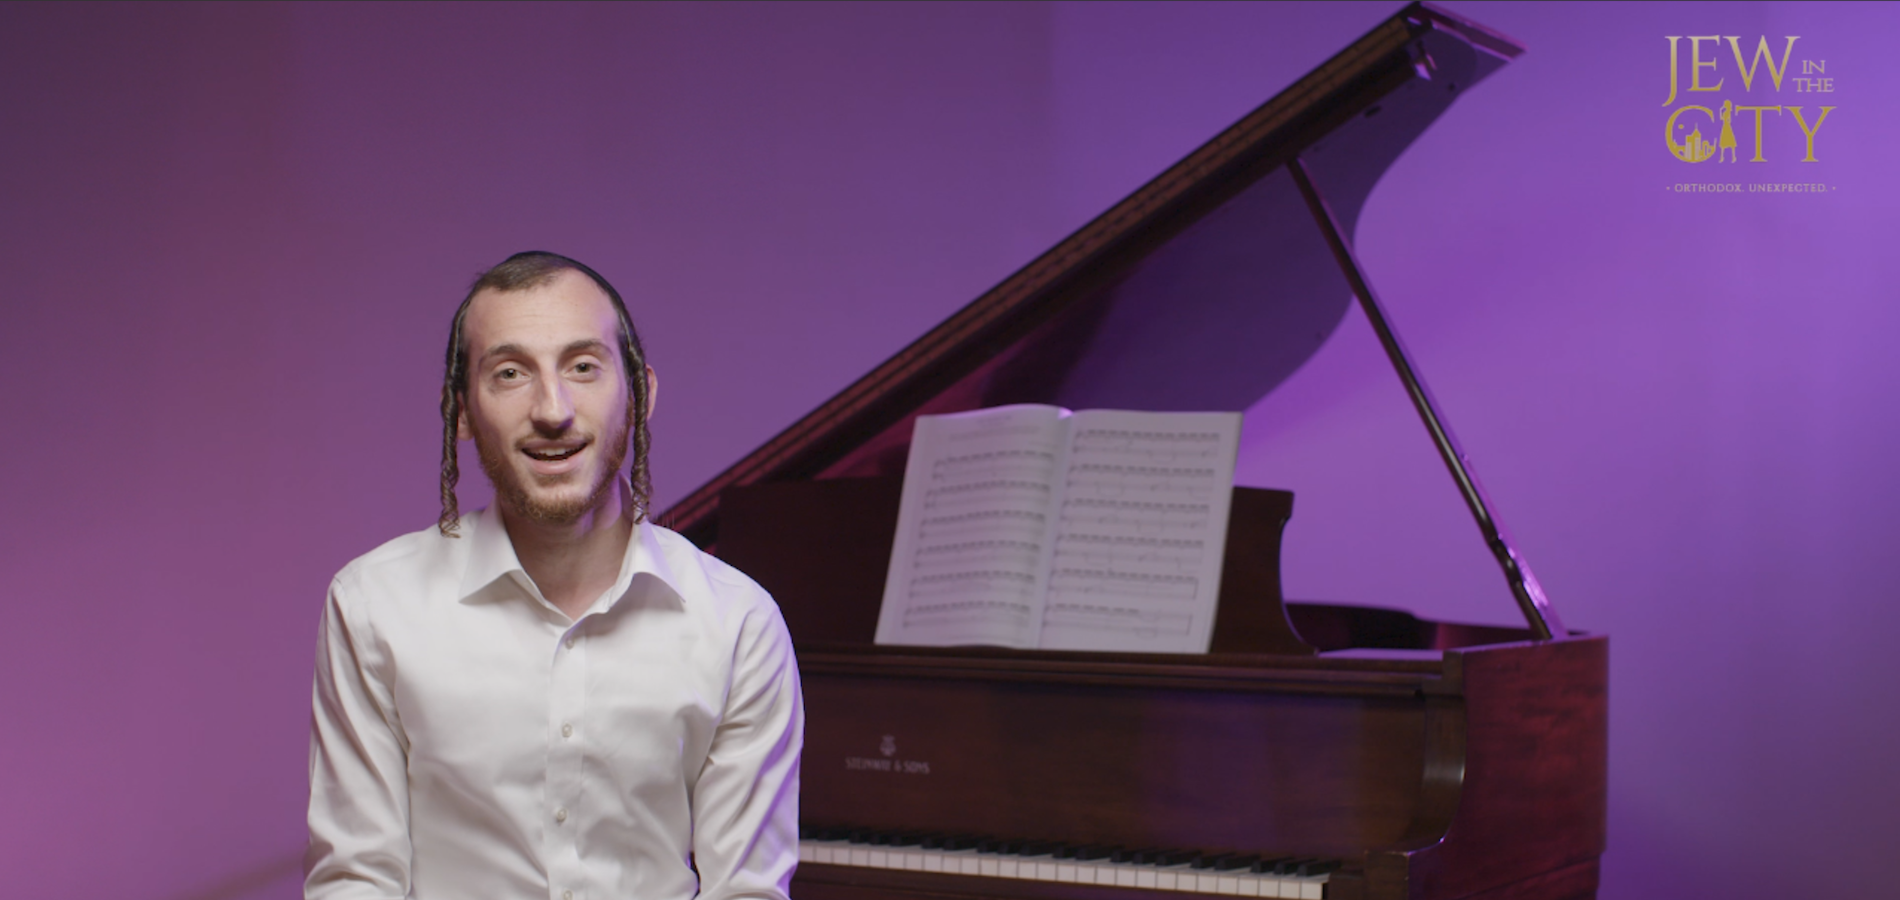 Shulem Lemmer will Perform at the All Star Awards Event